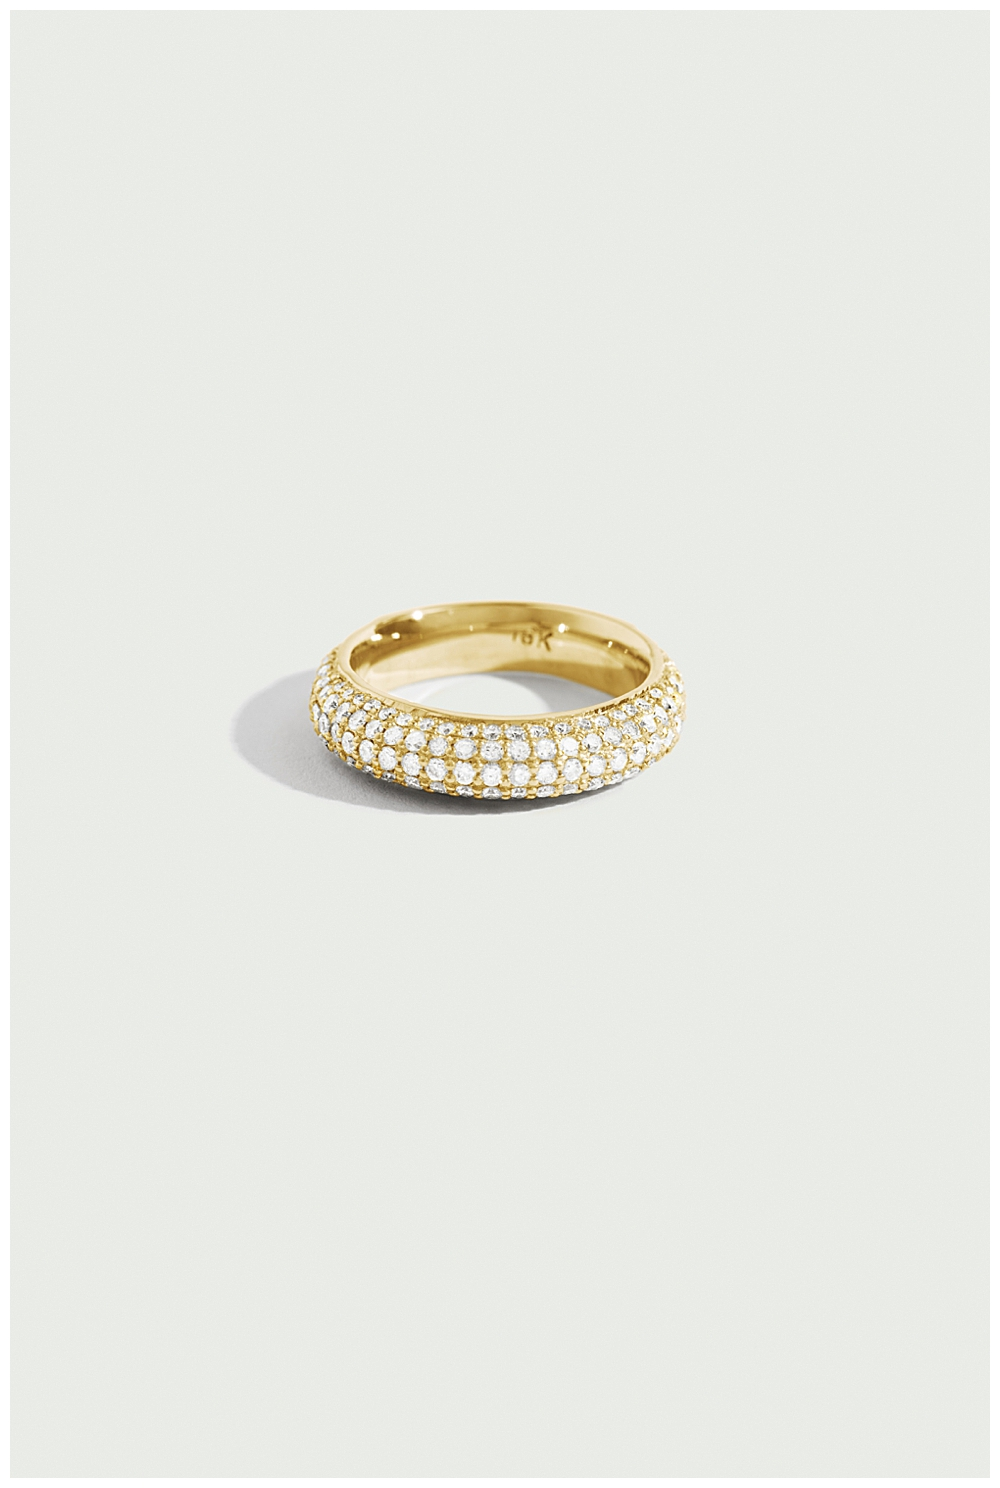 unisex-engagement-rings-5